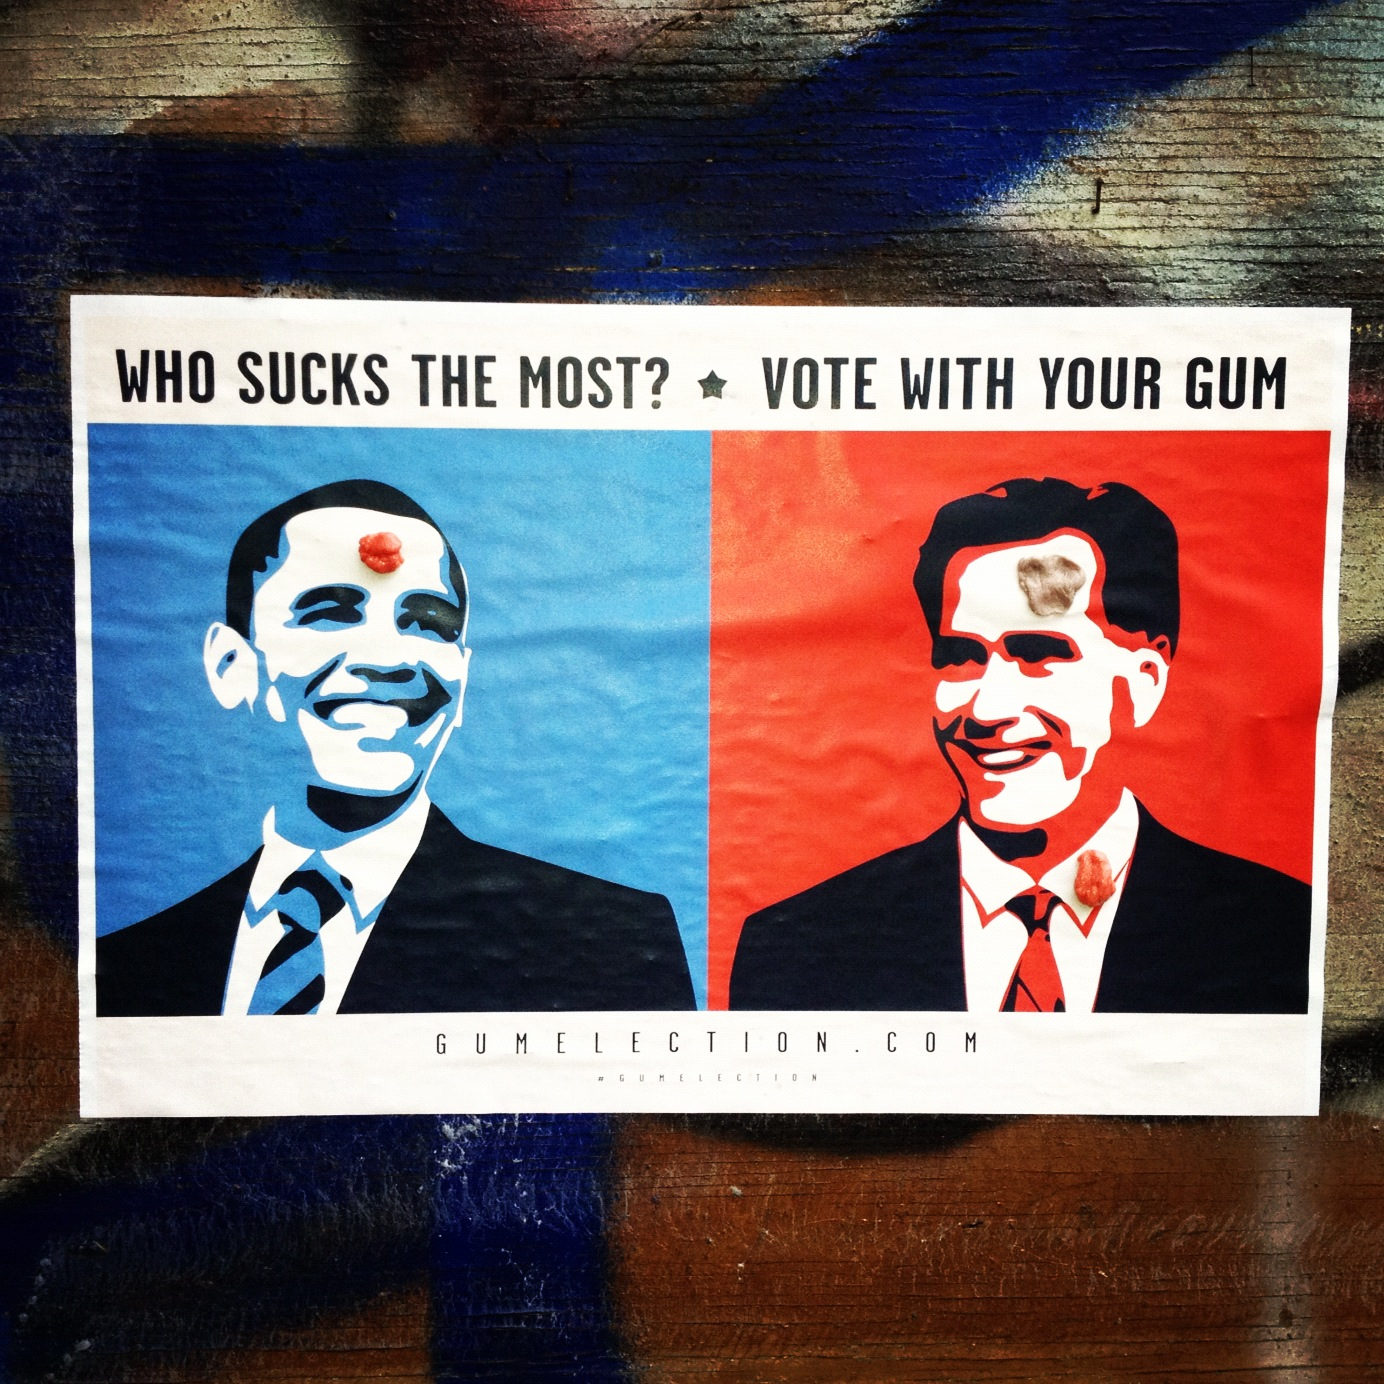 Obama Versus Romney - Vote With Your Gum!